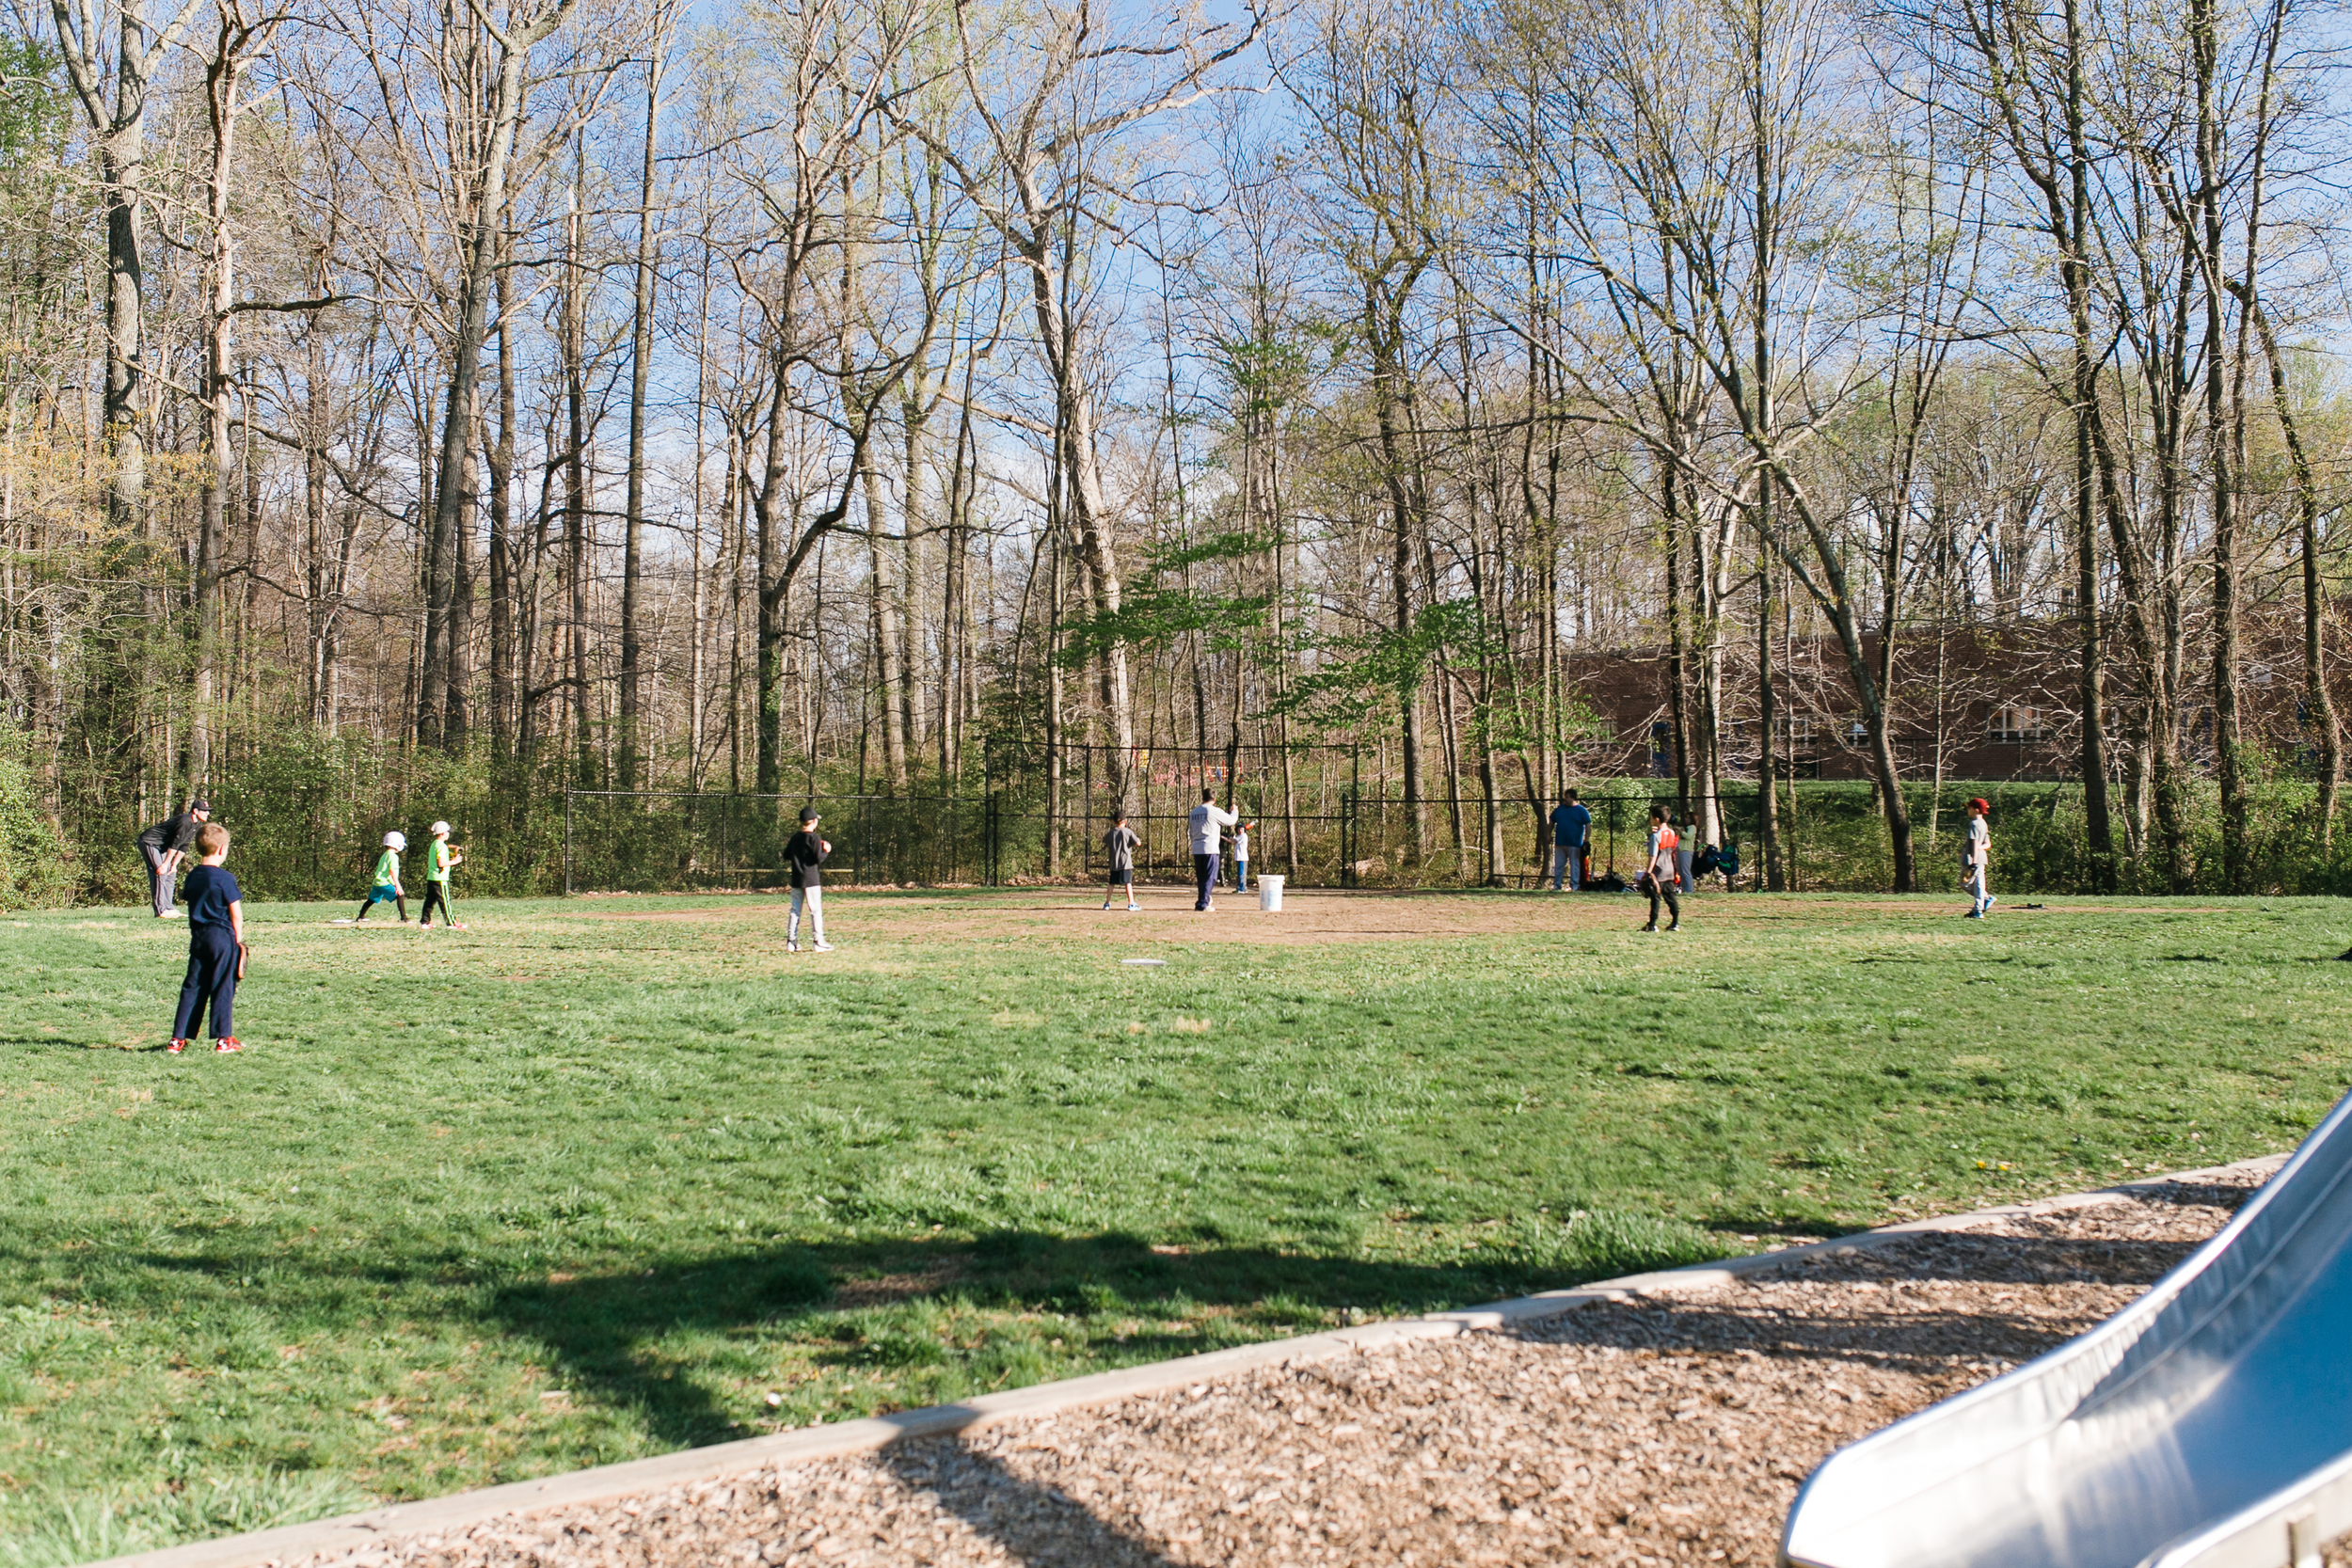 Kids practicing on the field at central elementary school